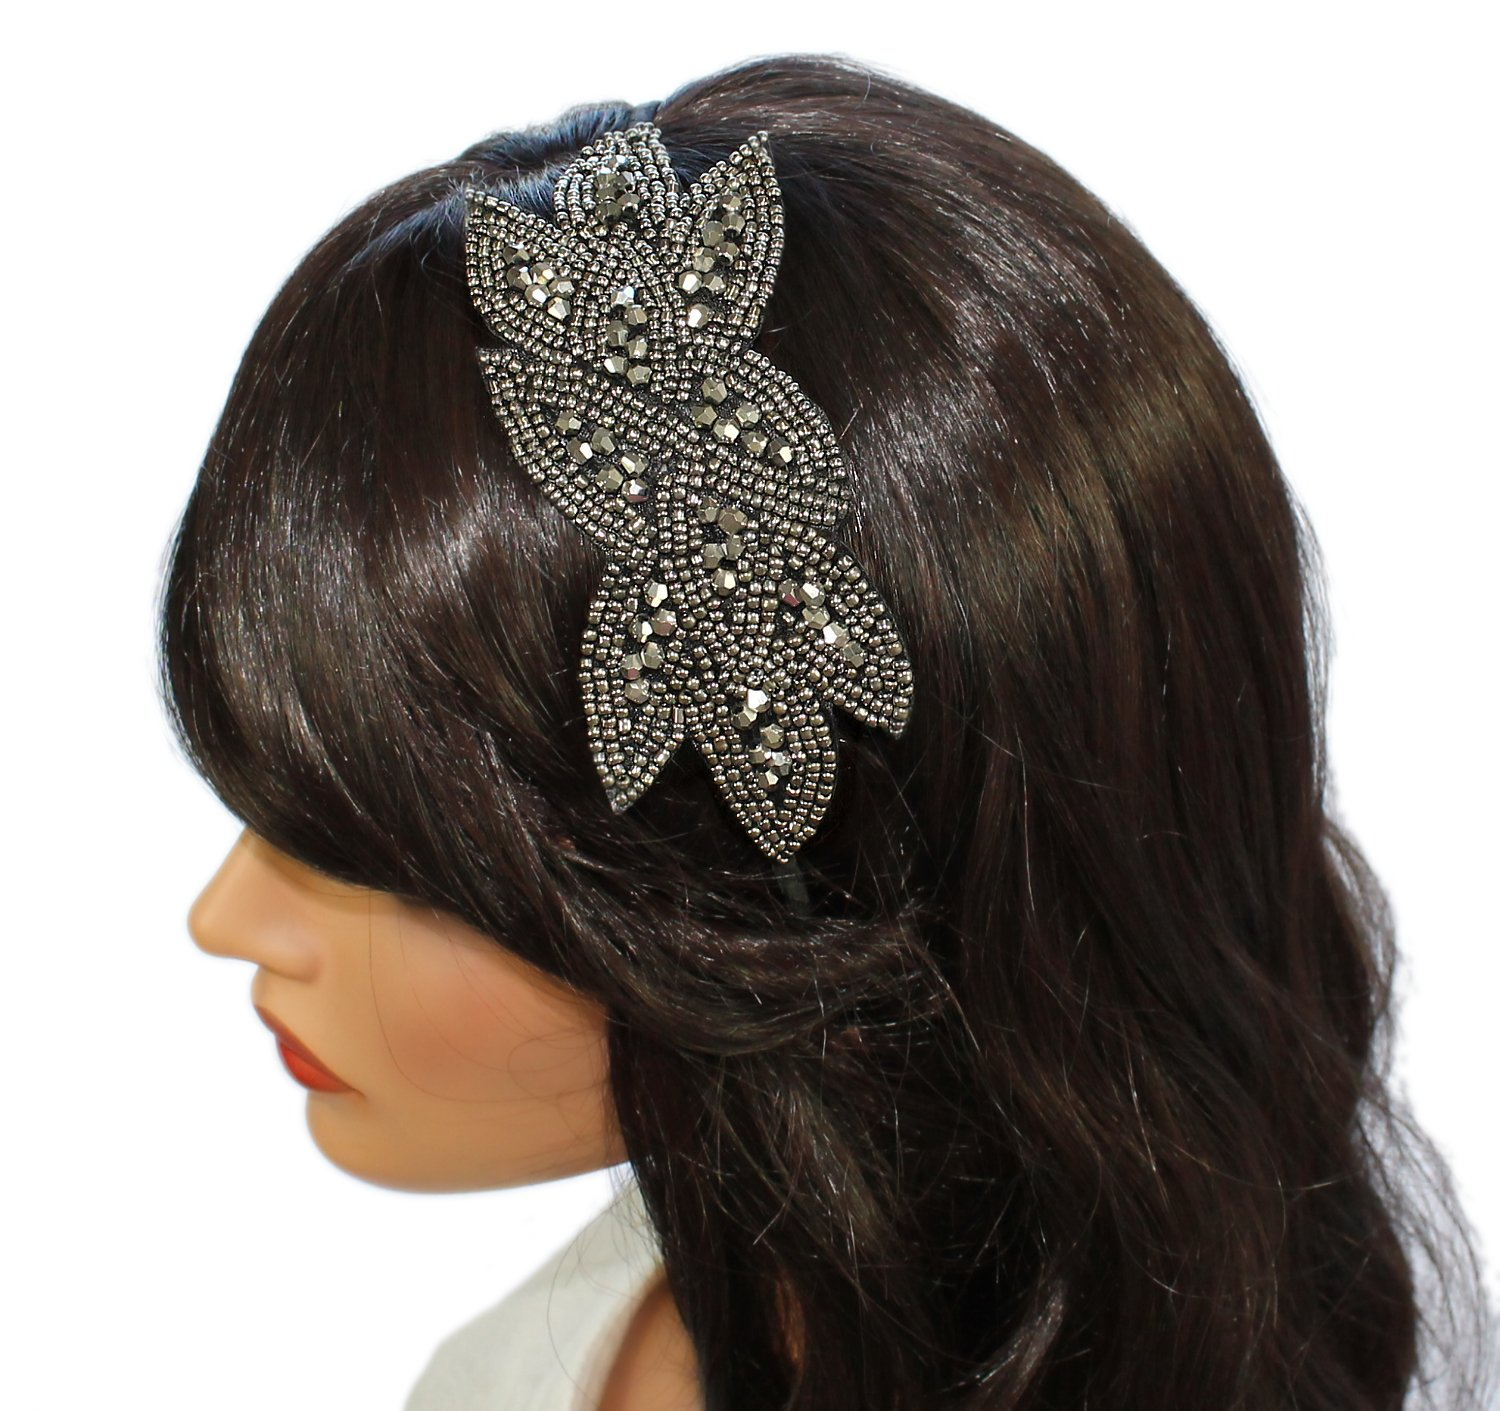 Beaded Flapper Headband Leaf Vintage 1920s Inspired Hairband Hair Accessory, Grey by CB Accessories (Image #3)